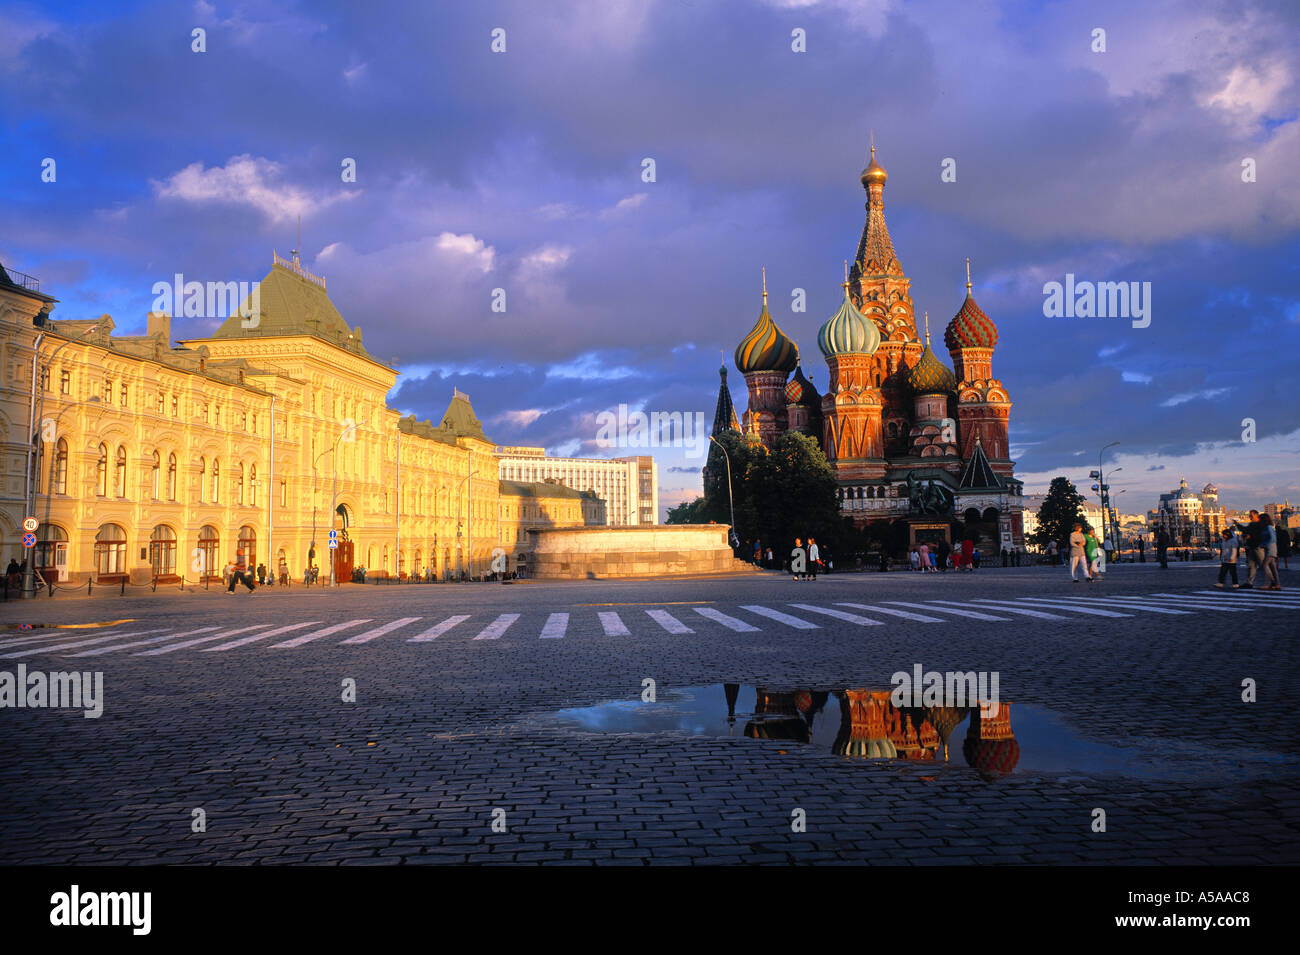 St. Basil's cathedral, Red Square, Moscow, Russia - Stock Image